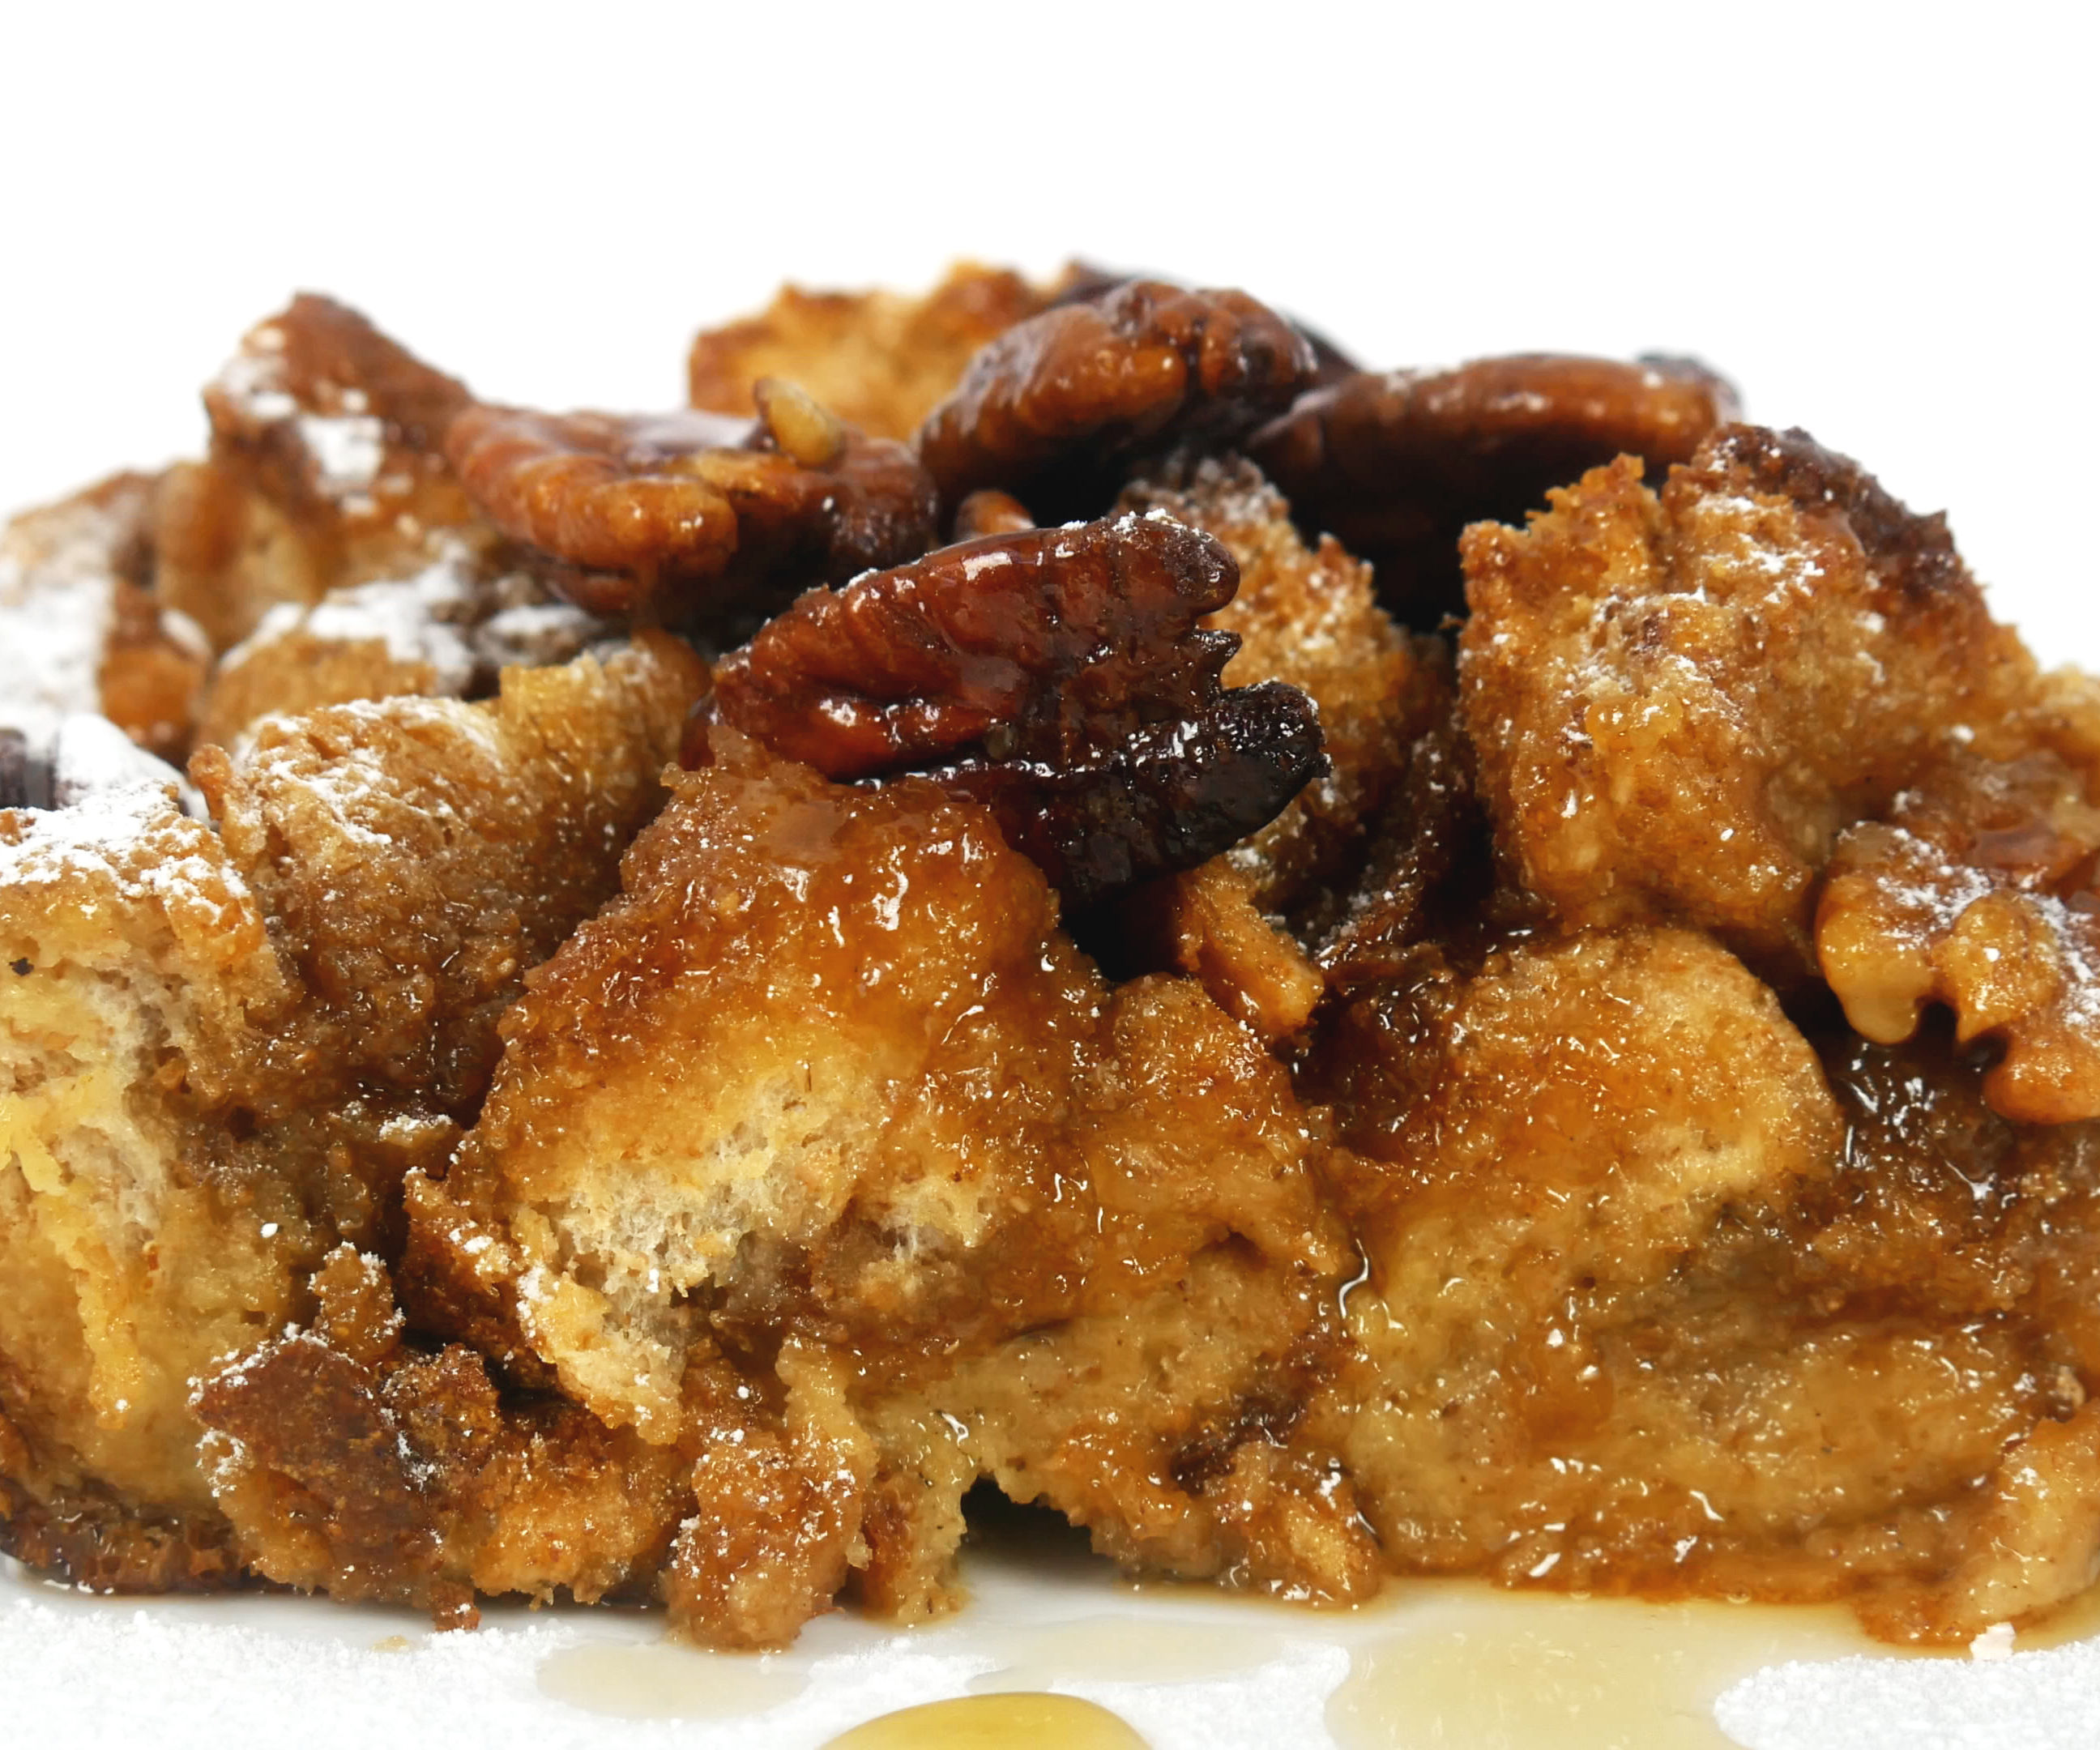 MAPLE & PECAN FRENCH TOAST CASSEROLE (BAKE)